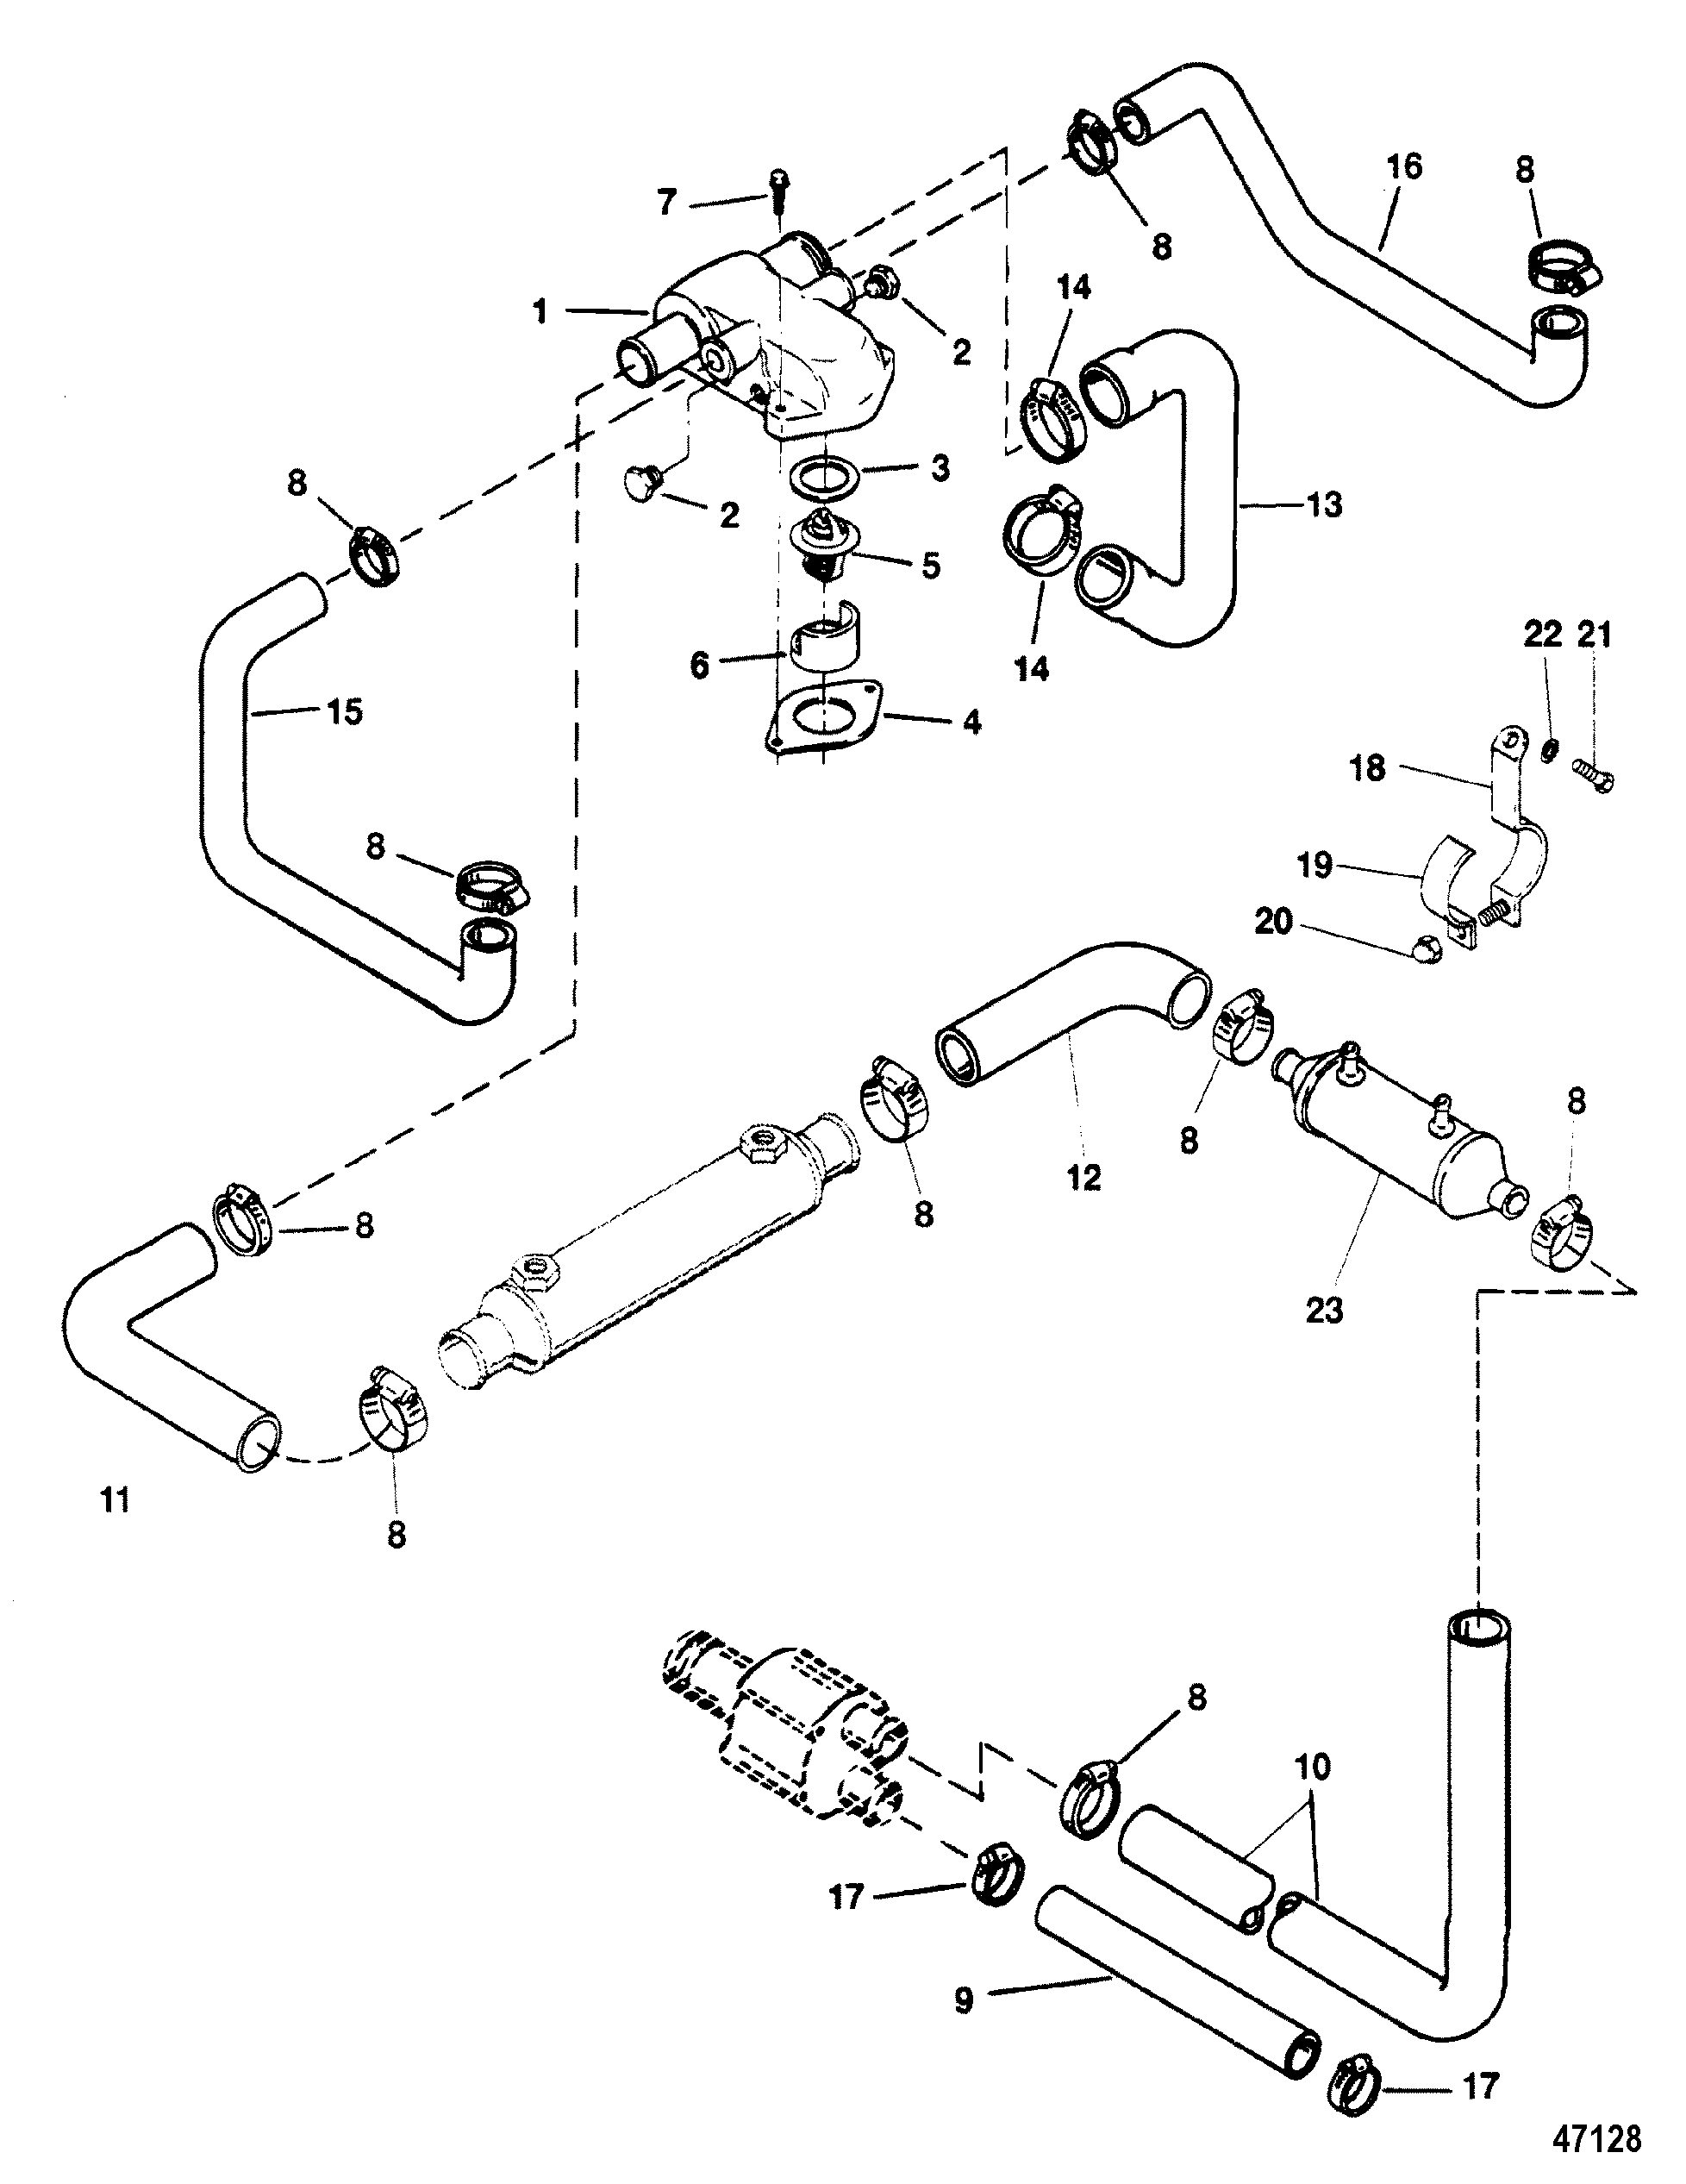 120 Hp Mercruiser Engine Diagram Pictures To Pin On